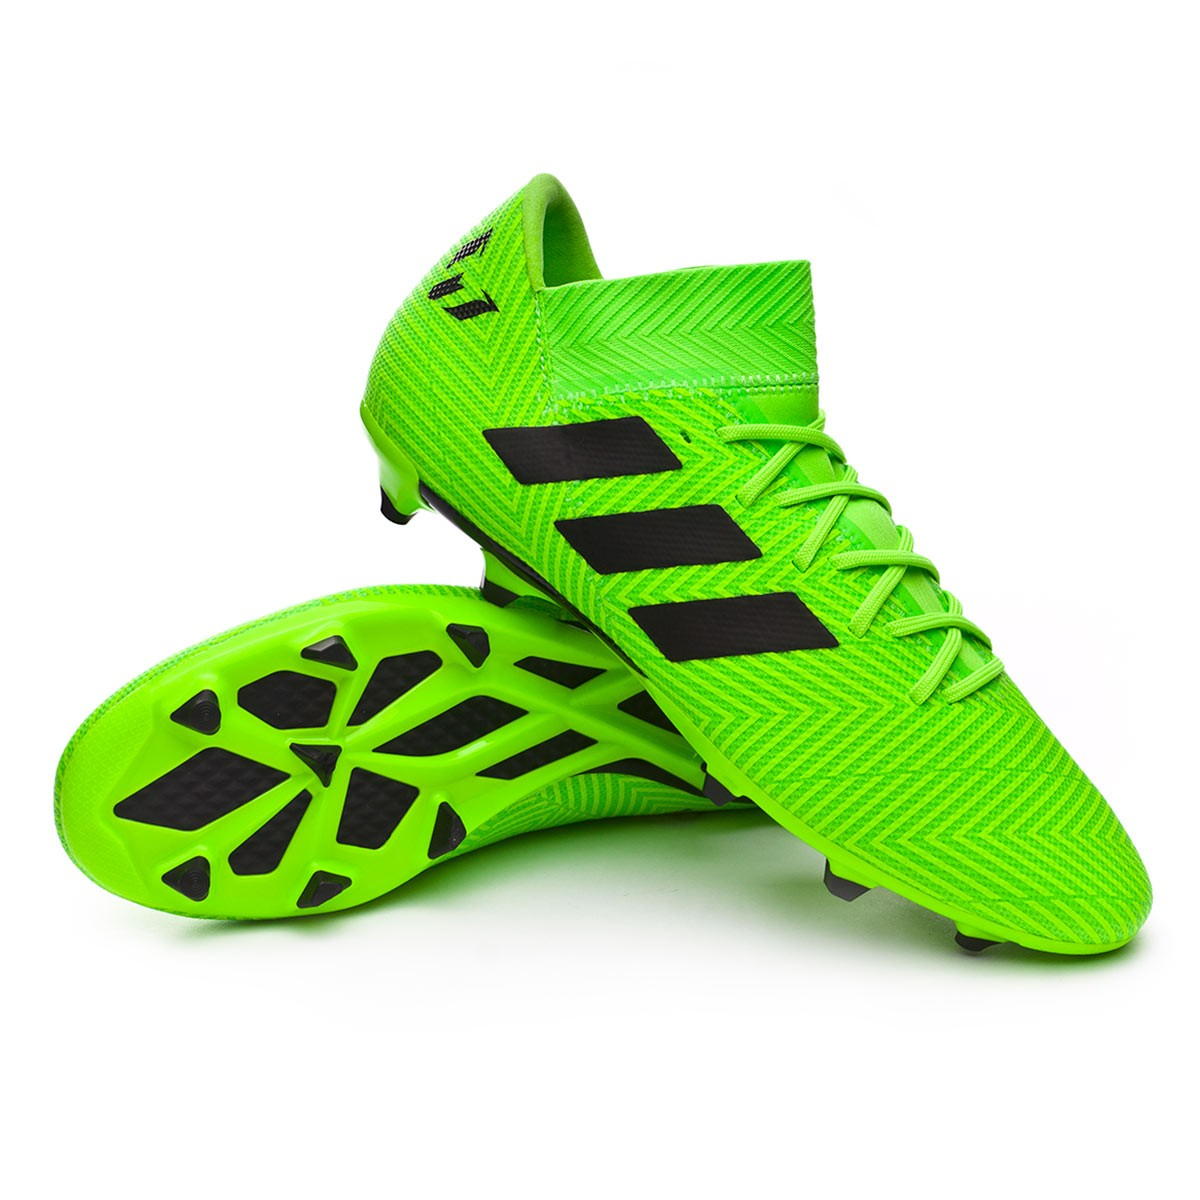 e1dafa628956 Football Boots adidas Nemeziz Messi 18.3 FG Solar green-Black ...